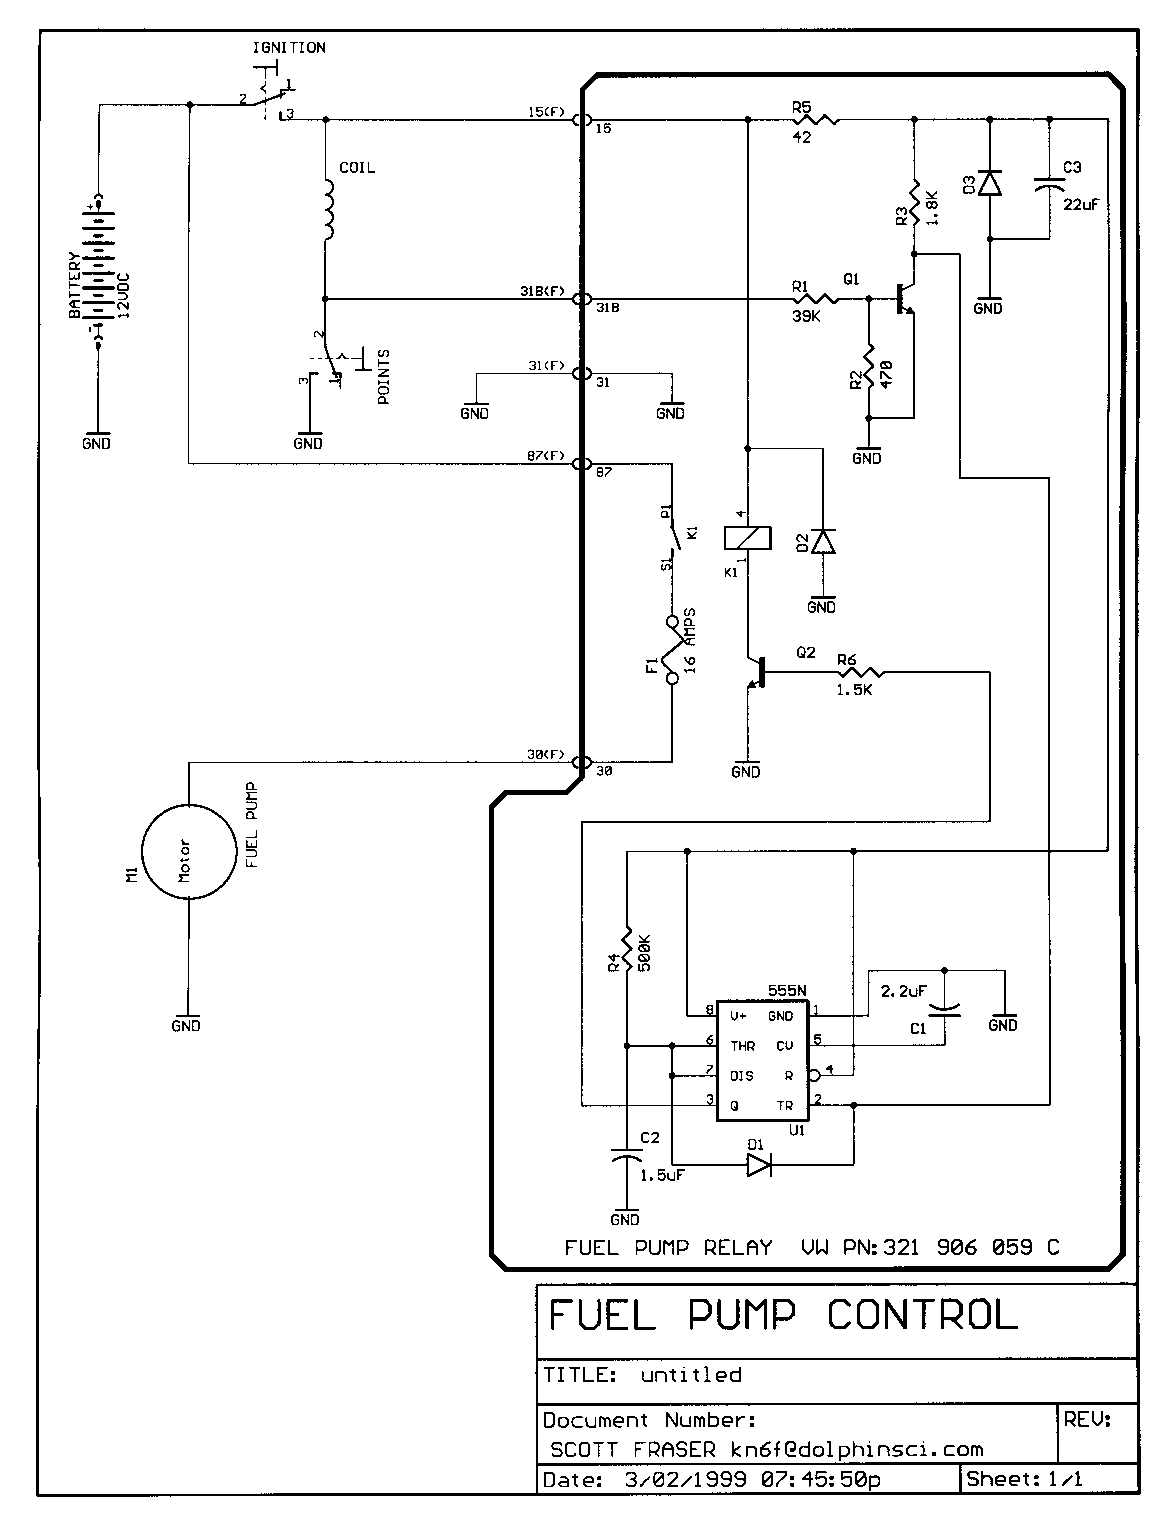 VWfuelPumpRelay thesamba com bay window bus view topic fuel pump wiring fuel pump relay wiring diagram at soozxer.org